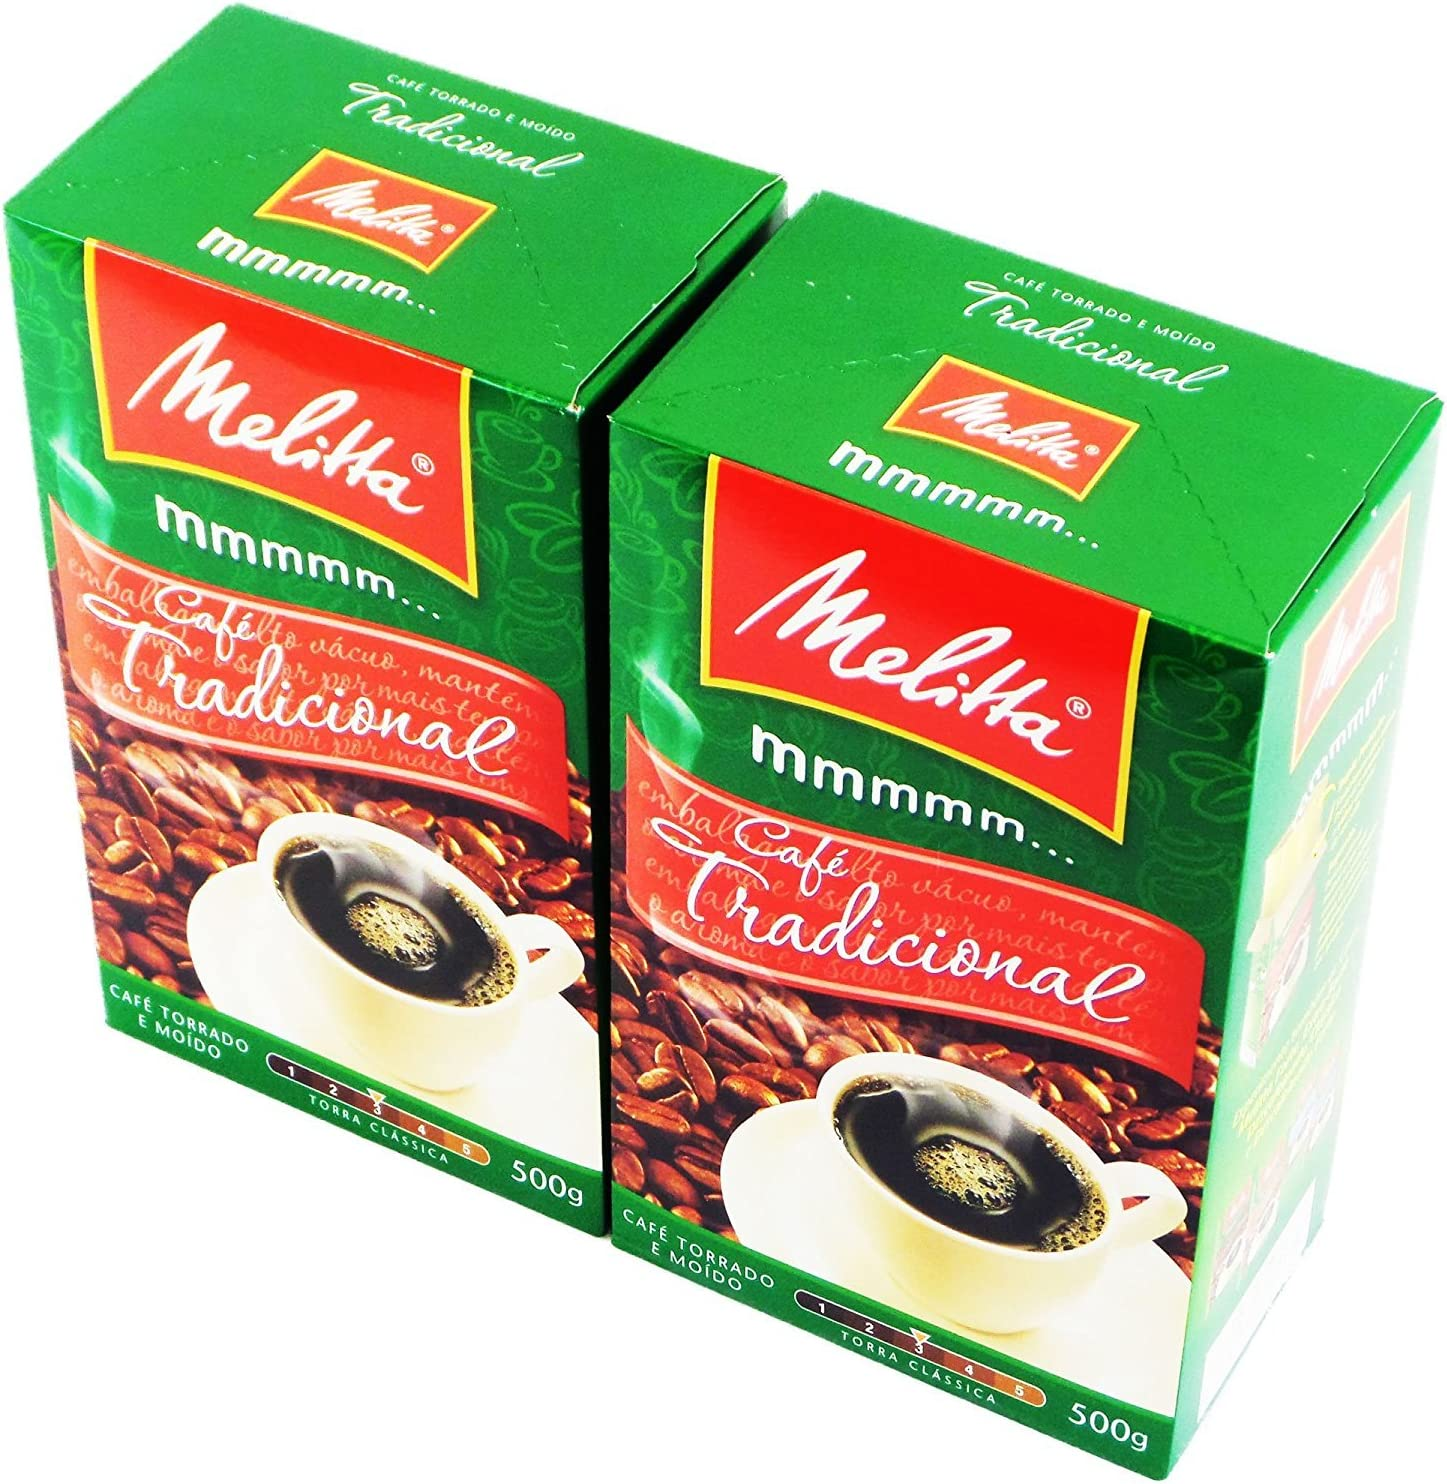 Melitta - Traditional Roasted Coffee - 17.6 oz (PACK OF 02) | Melitta Café Torrado e Moído Tradicional - 500g